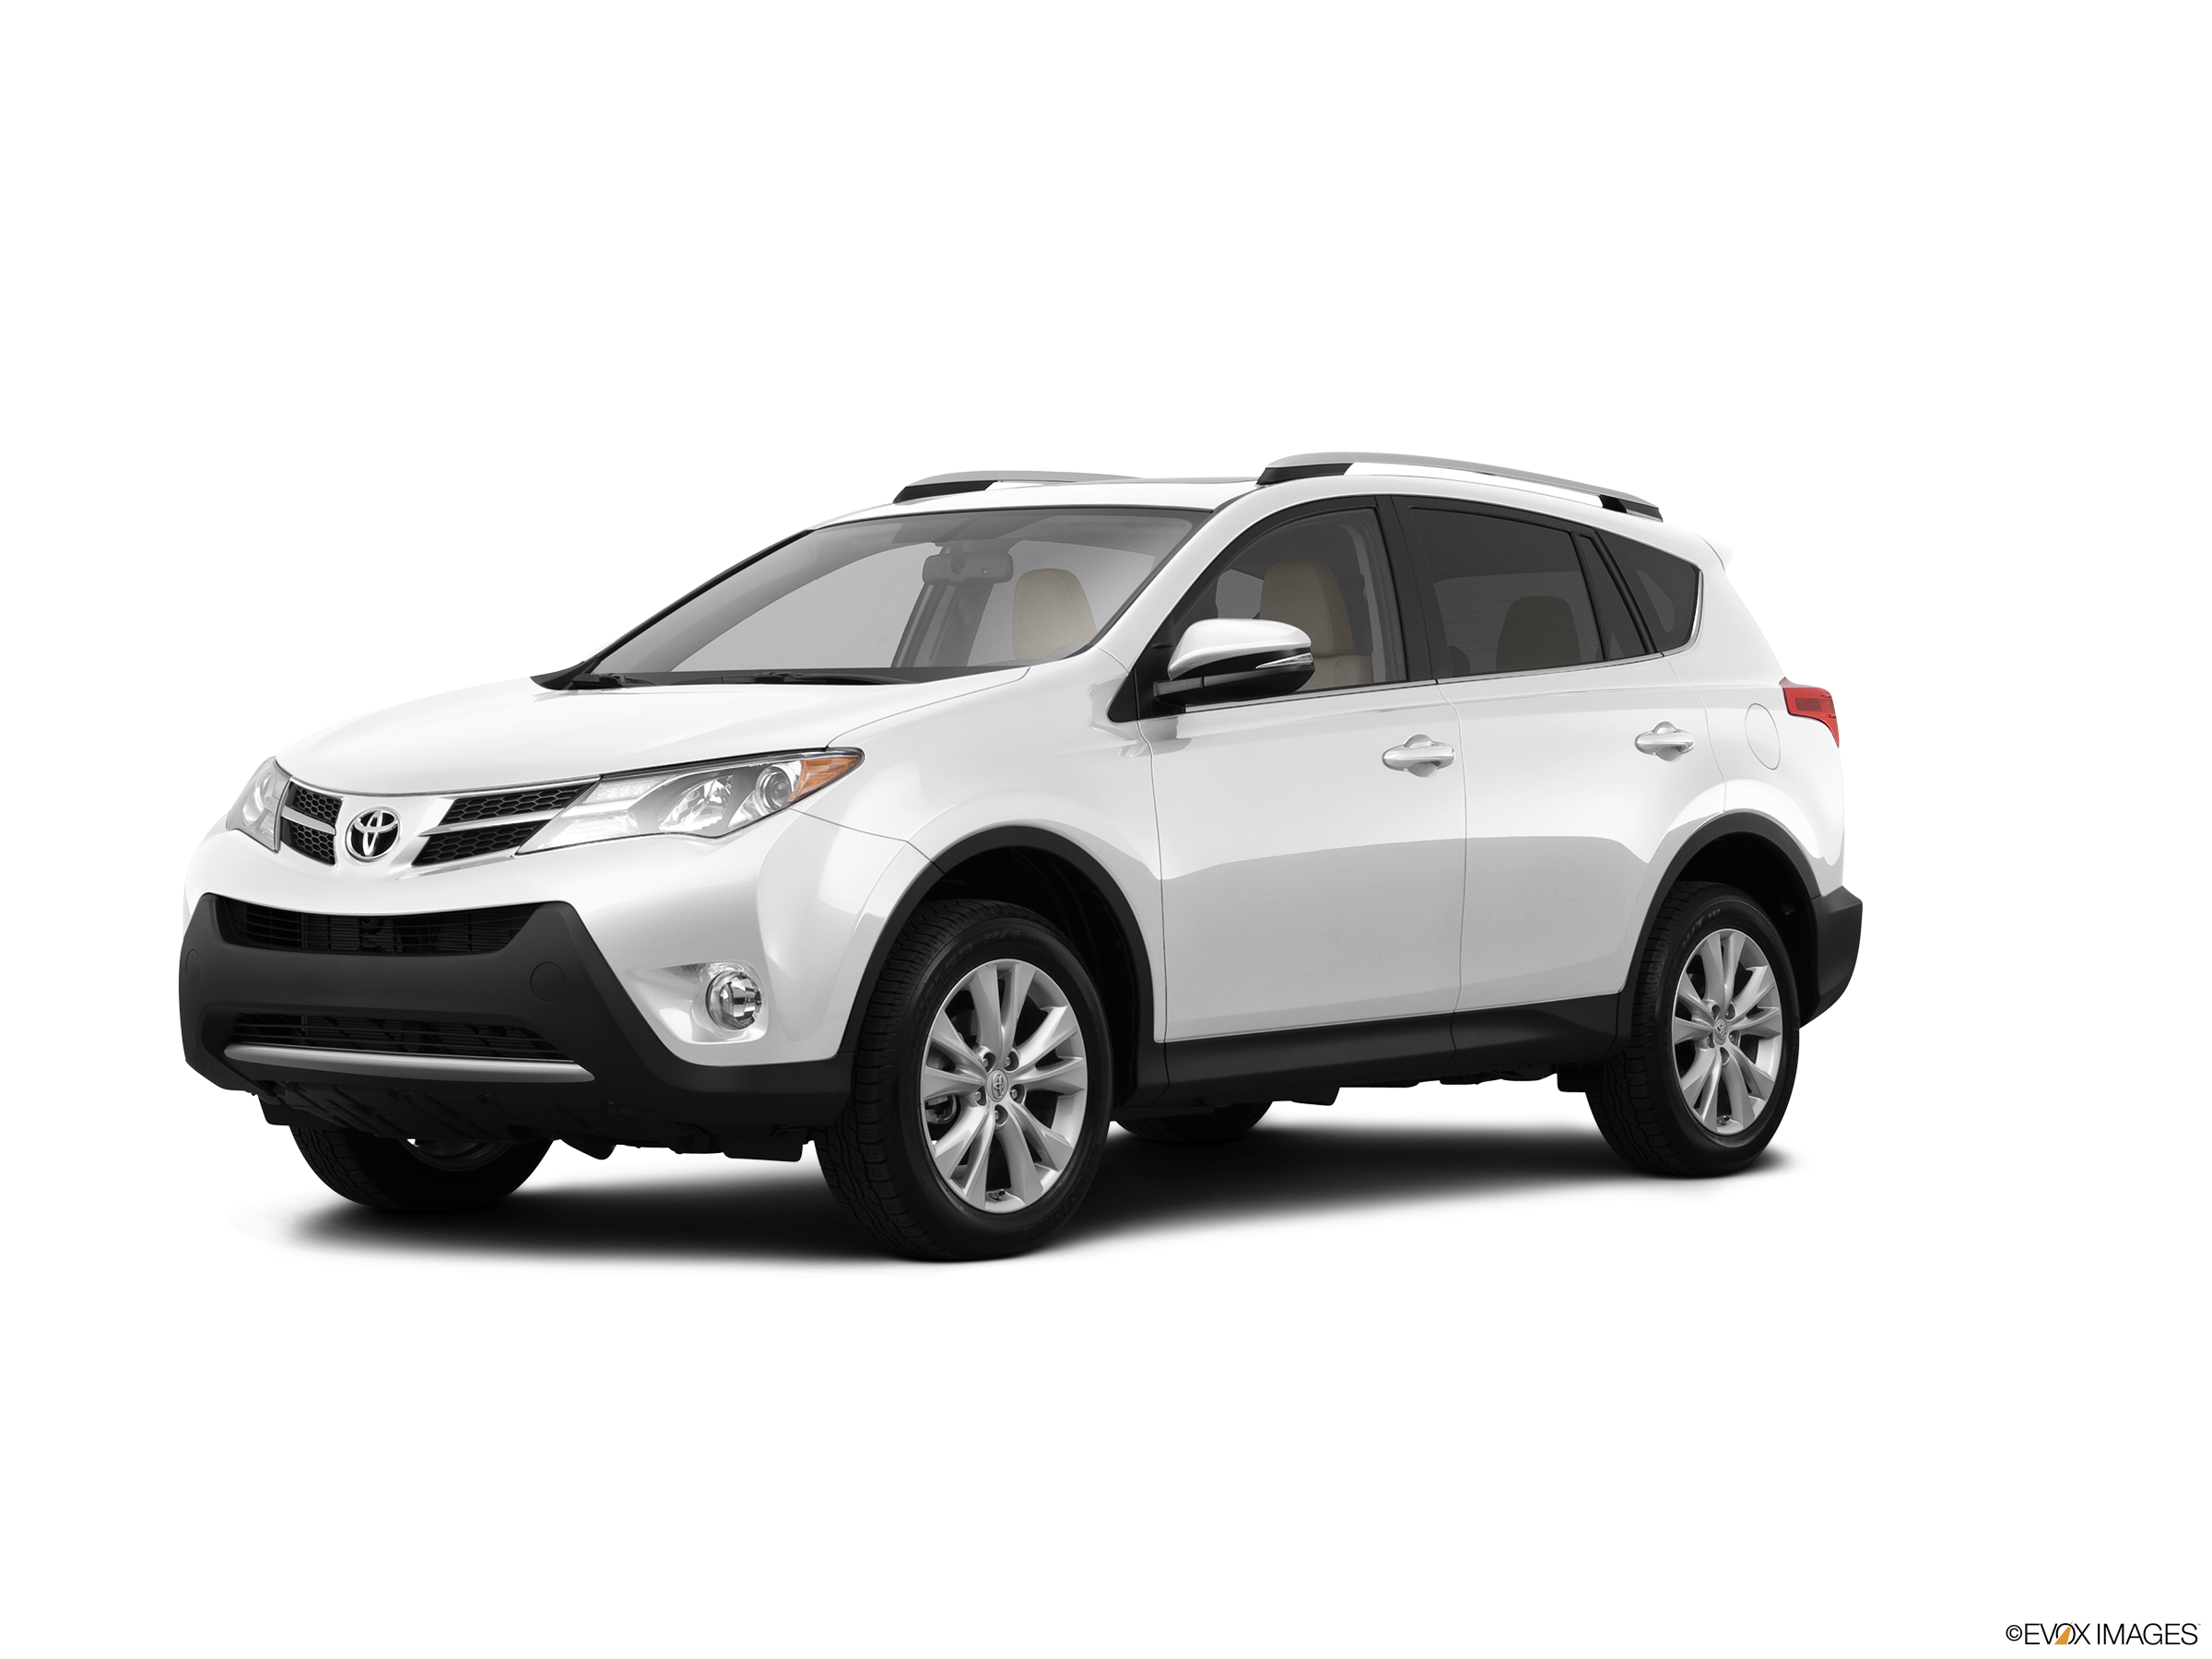 2013 Toyota Rav4 Values Cars For Sale Kelley Blue Book